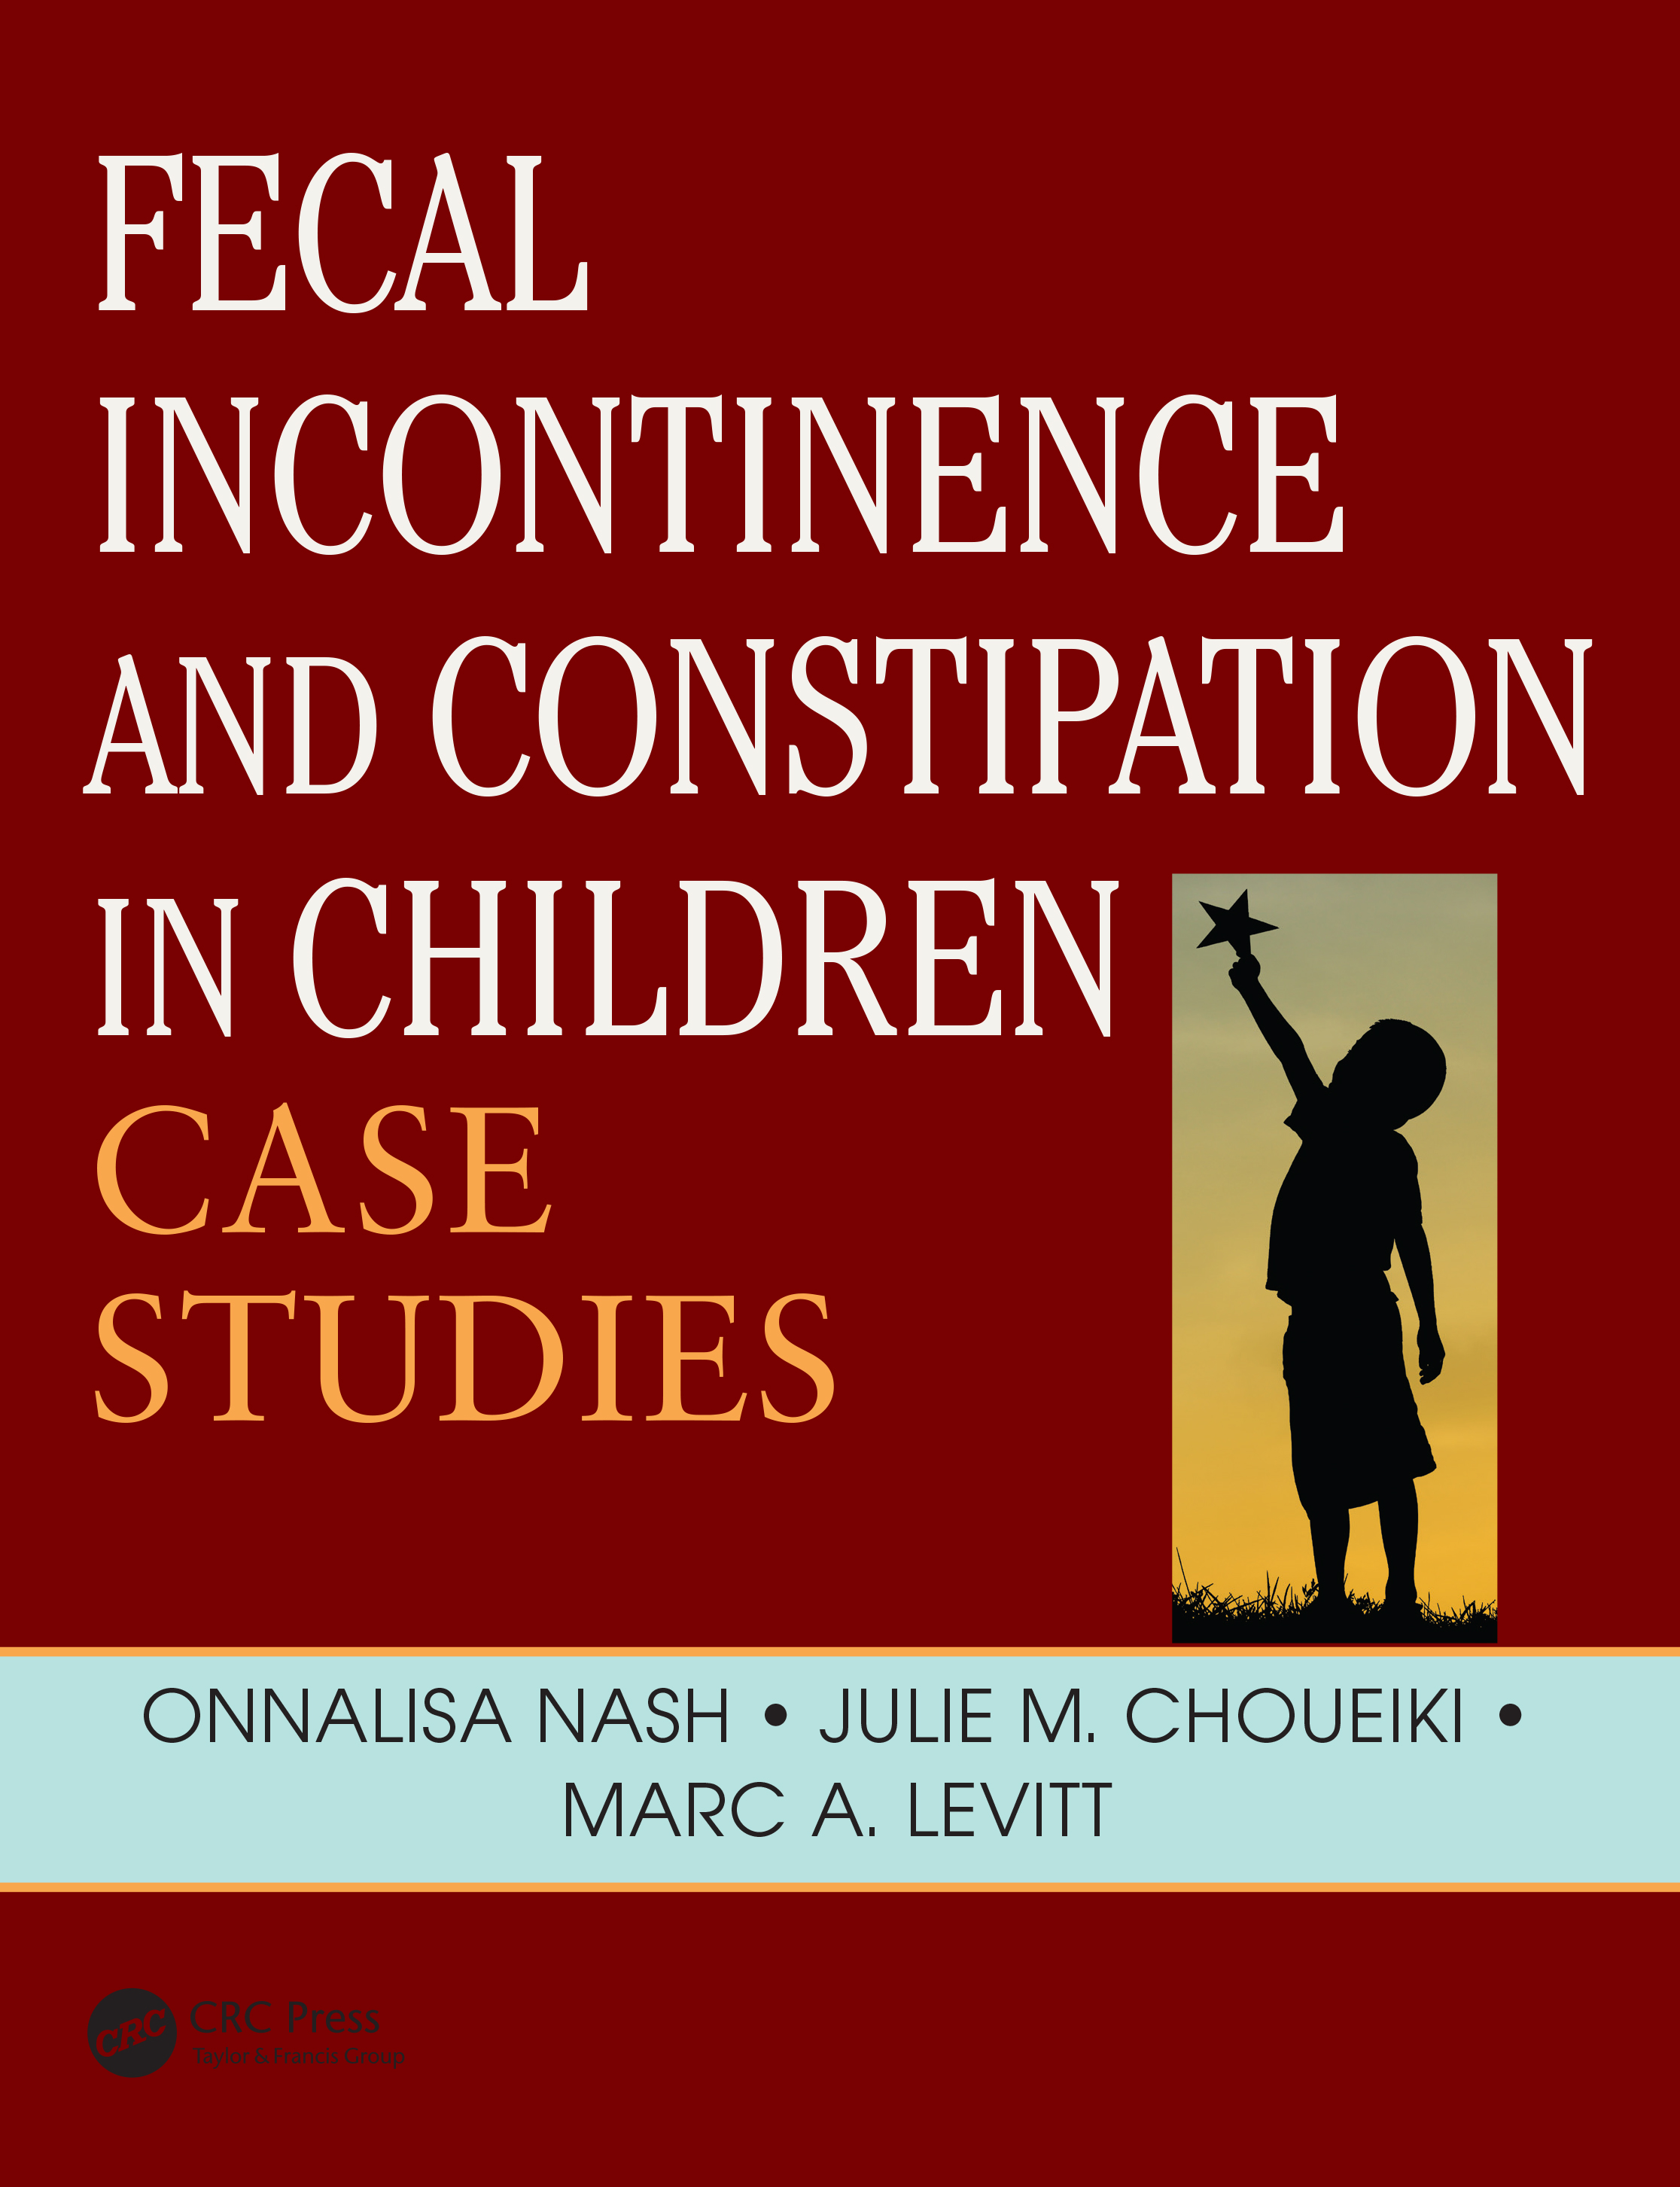 Fecal Incontinence and Constipation in Children: Case Studies, 1st Edition (Paperback) book cover